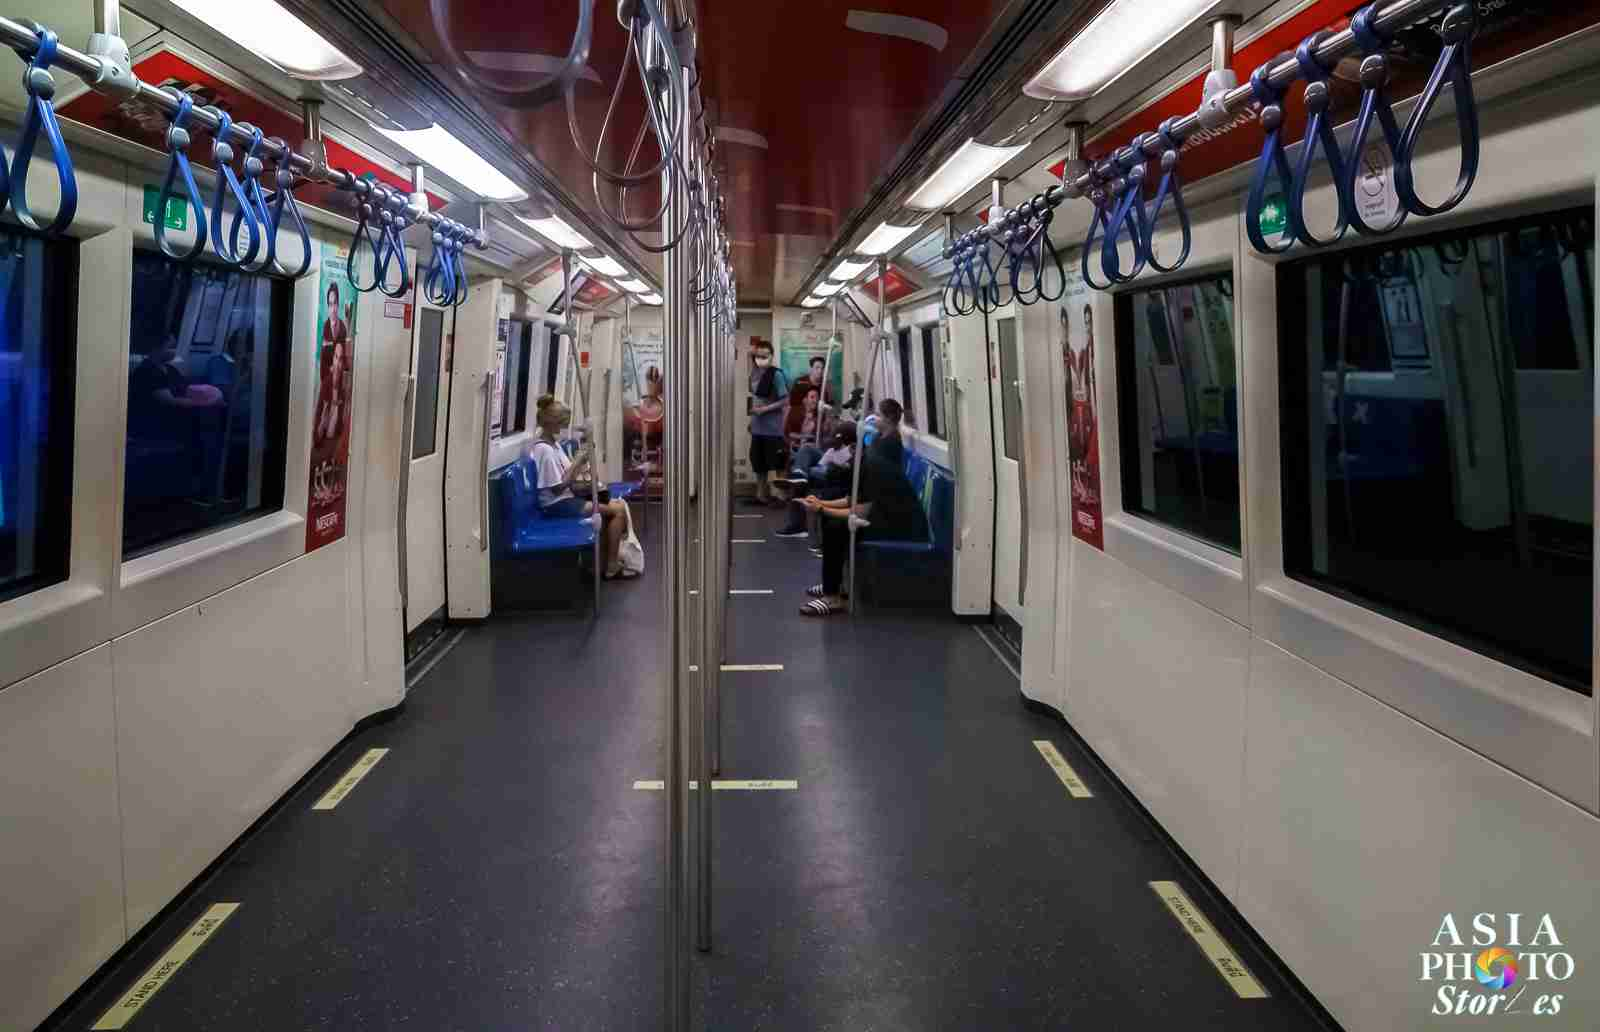 Usually packed shoulder-to-shoulder until past 8 p.m., Bangkok's Skytrain runs nearly empty in the 7 o'clock hour April 2.